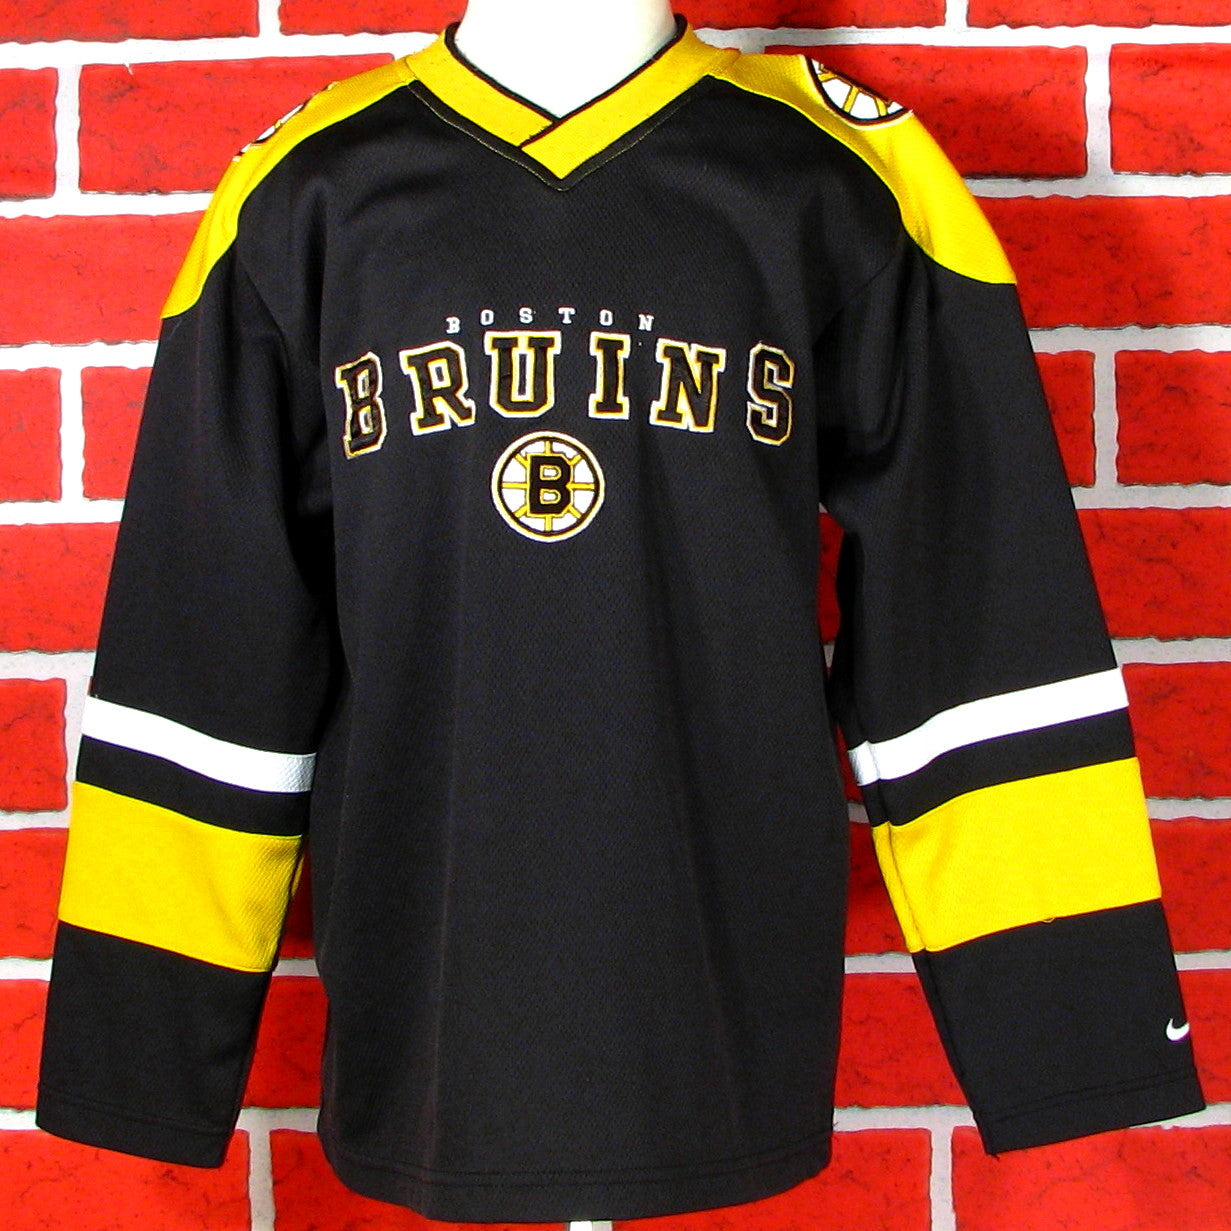 Boston Bruins Jersey Youth